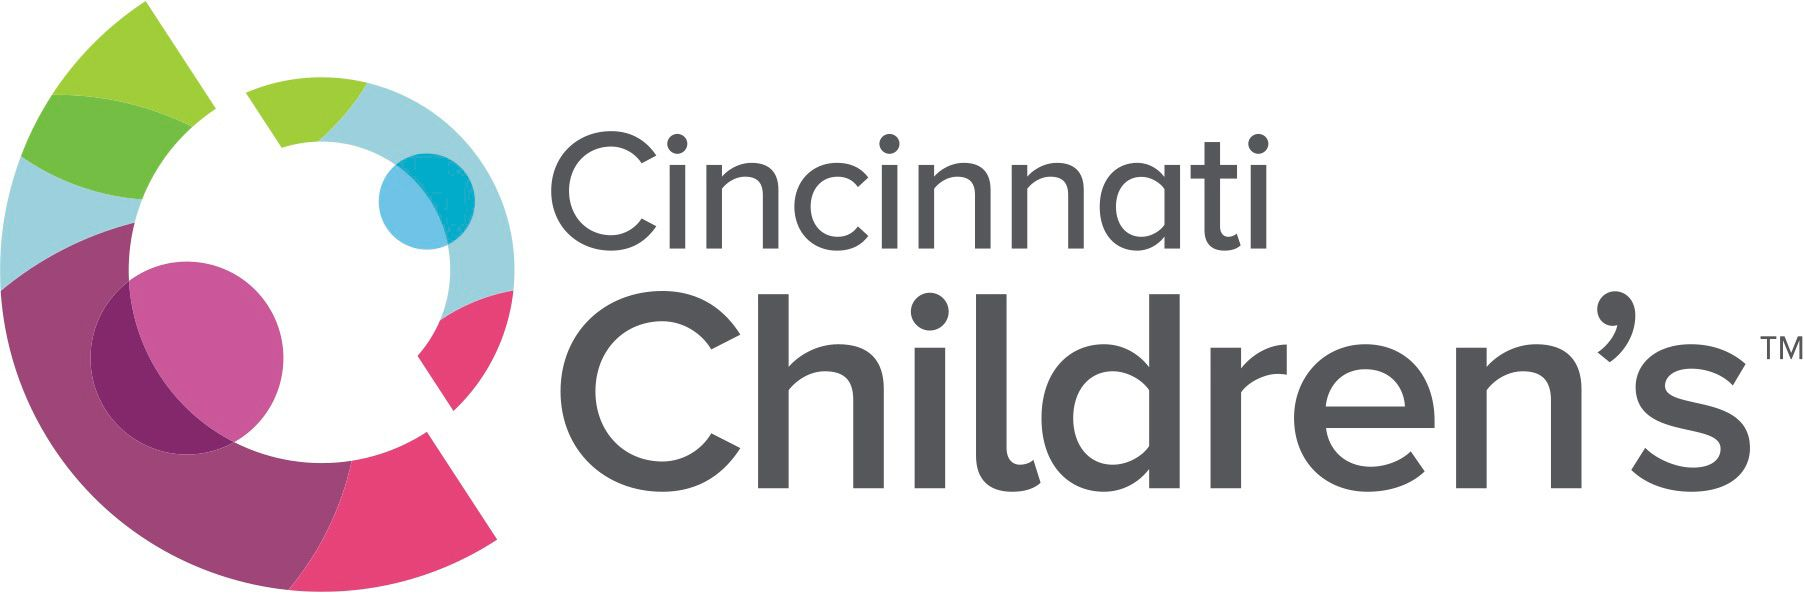 Cincinnati childrens environmental equity with images